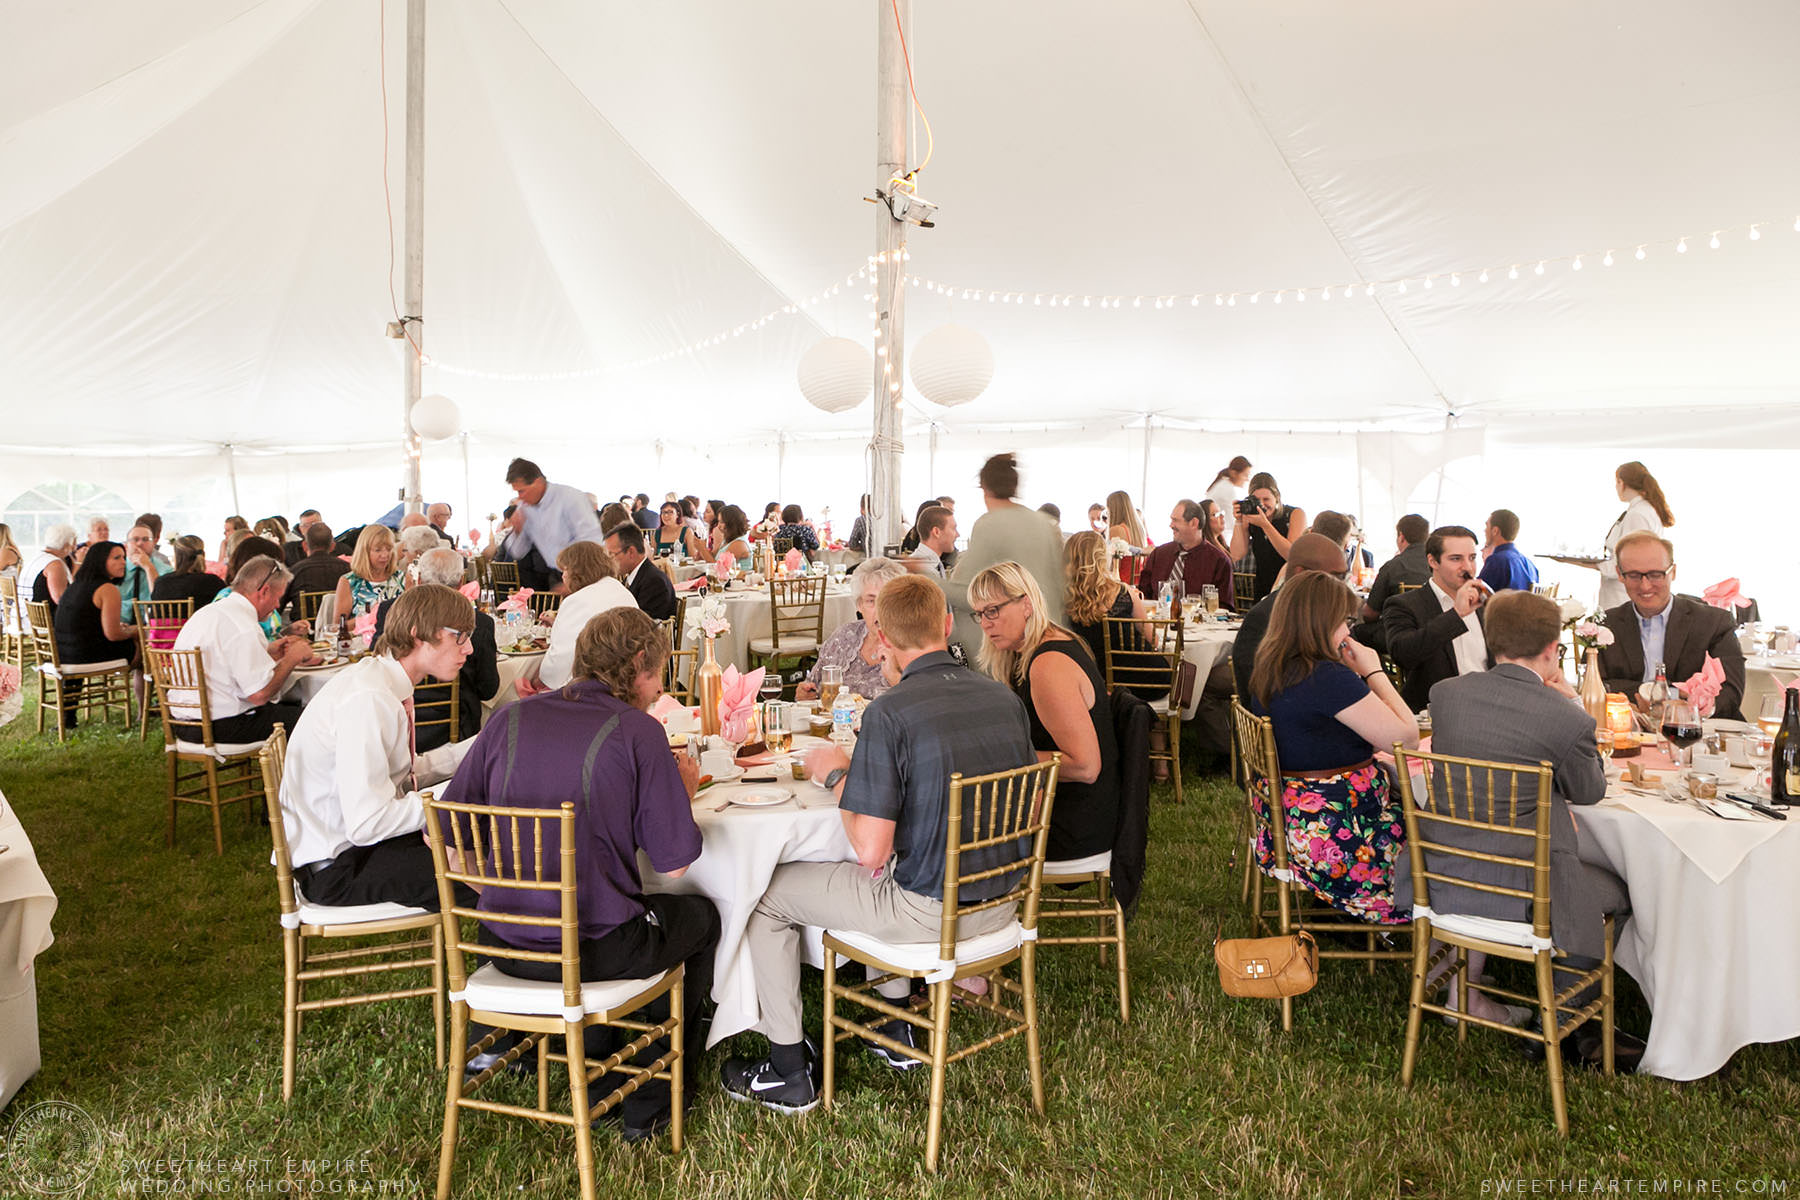 Guests eating dinner during wedding reception; Aberfoyle Mill Wedding